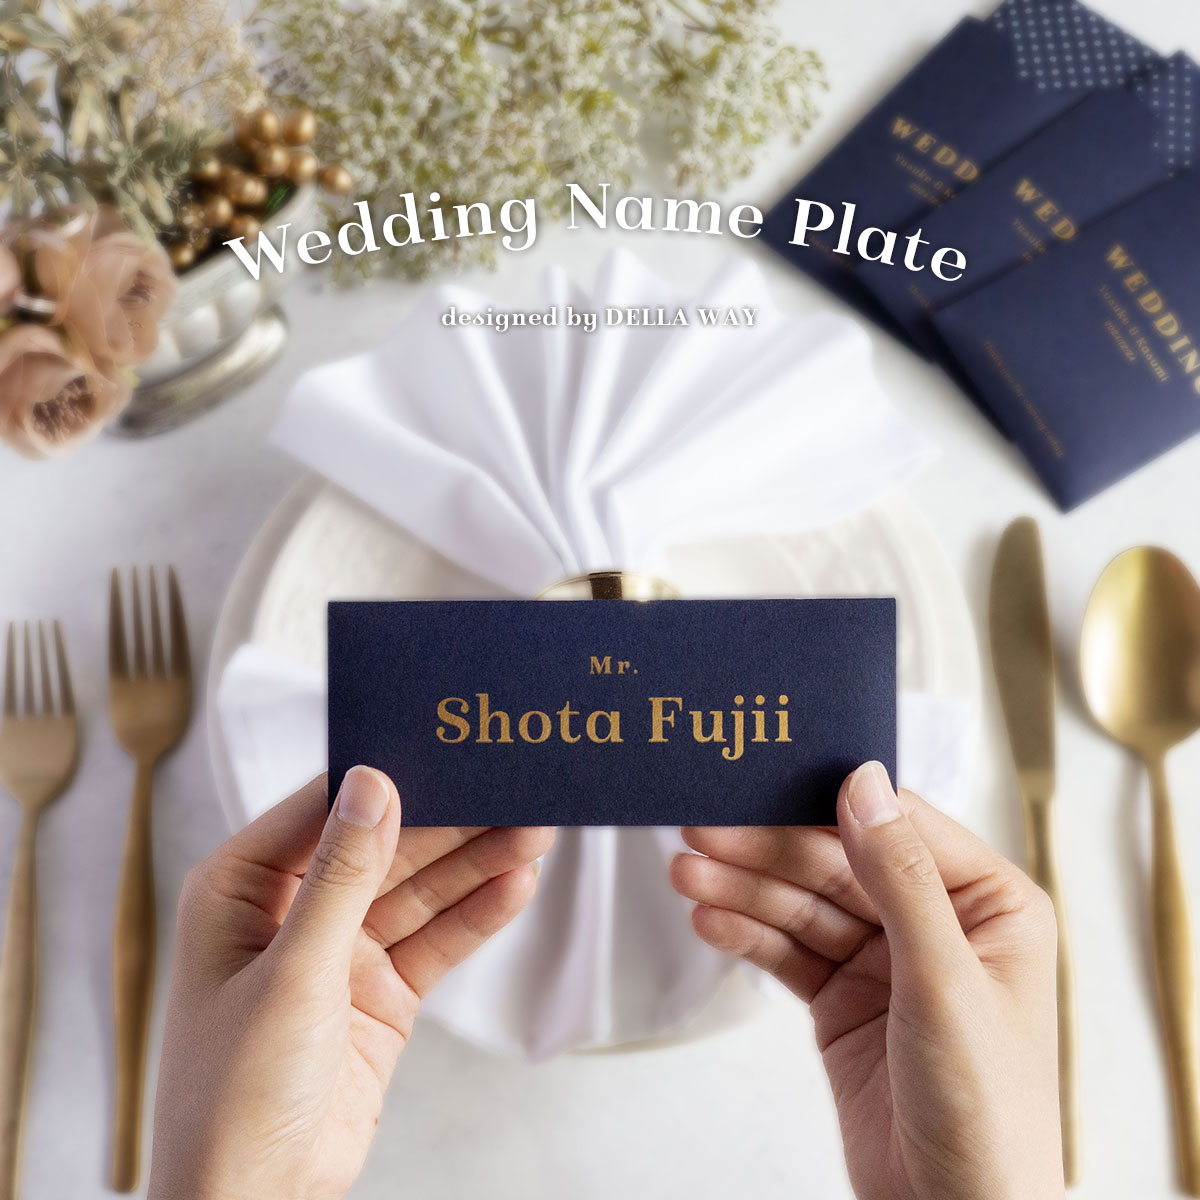 席札 Wedding Name Plate